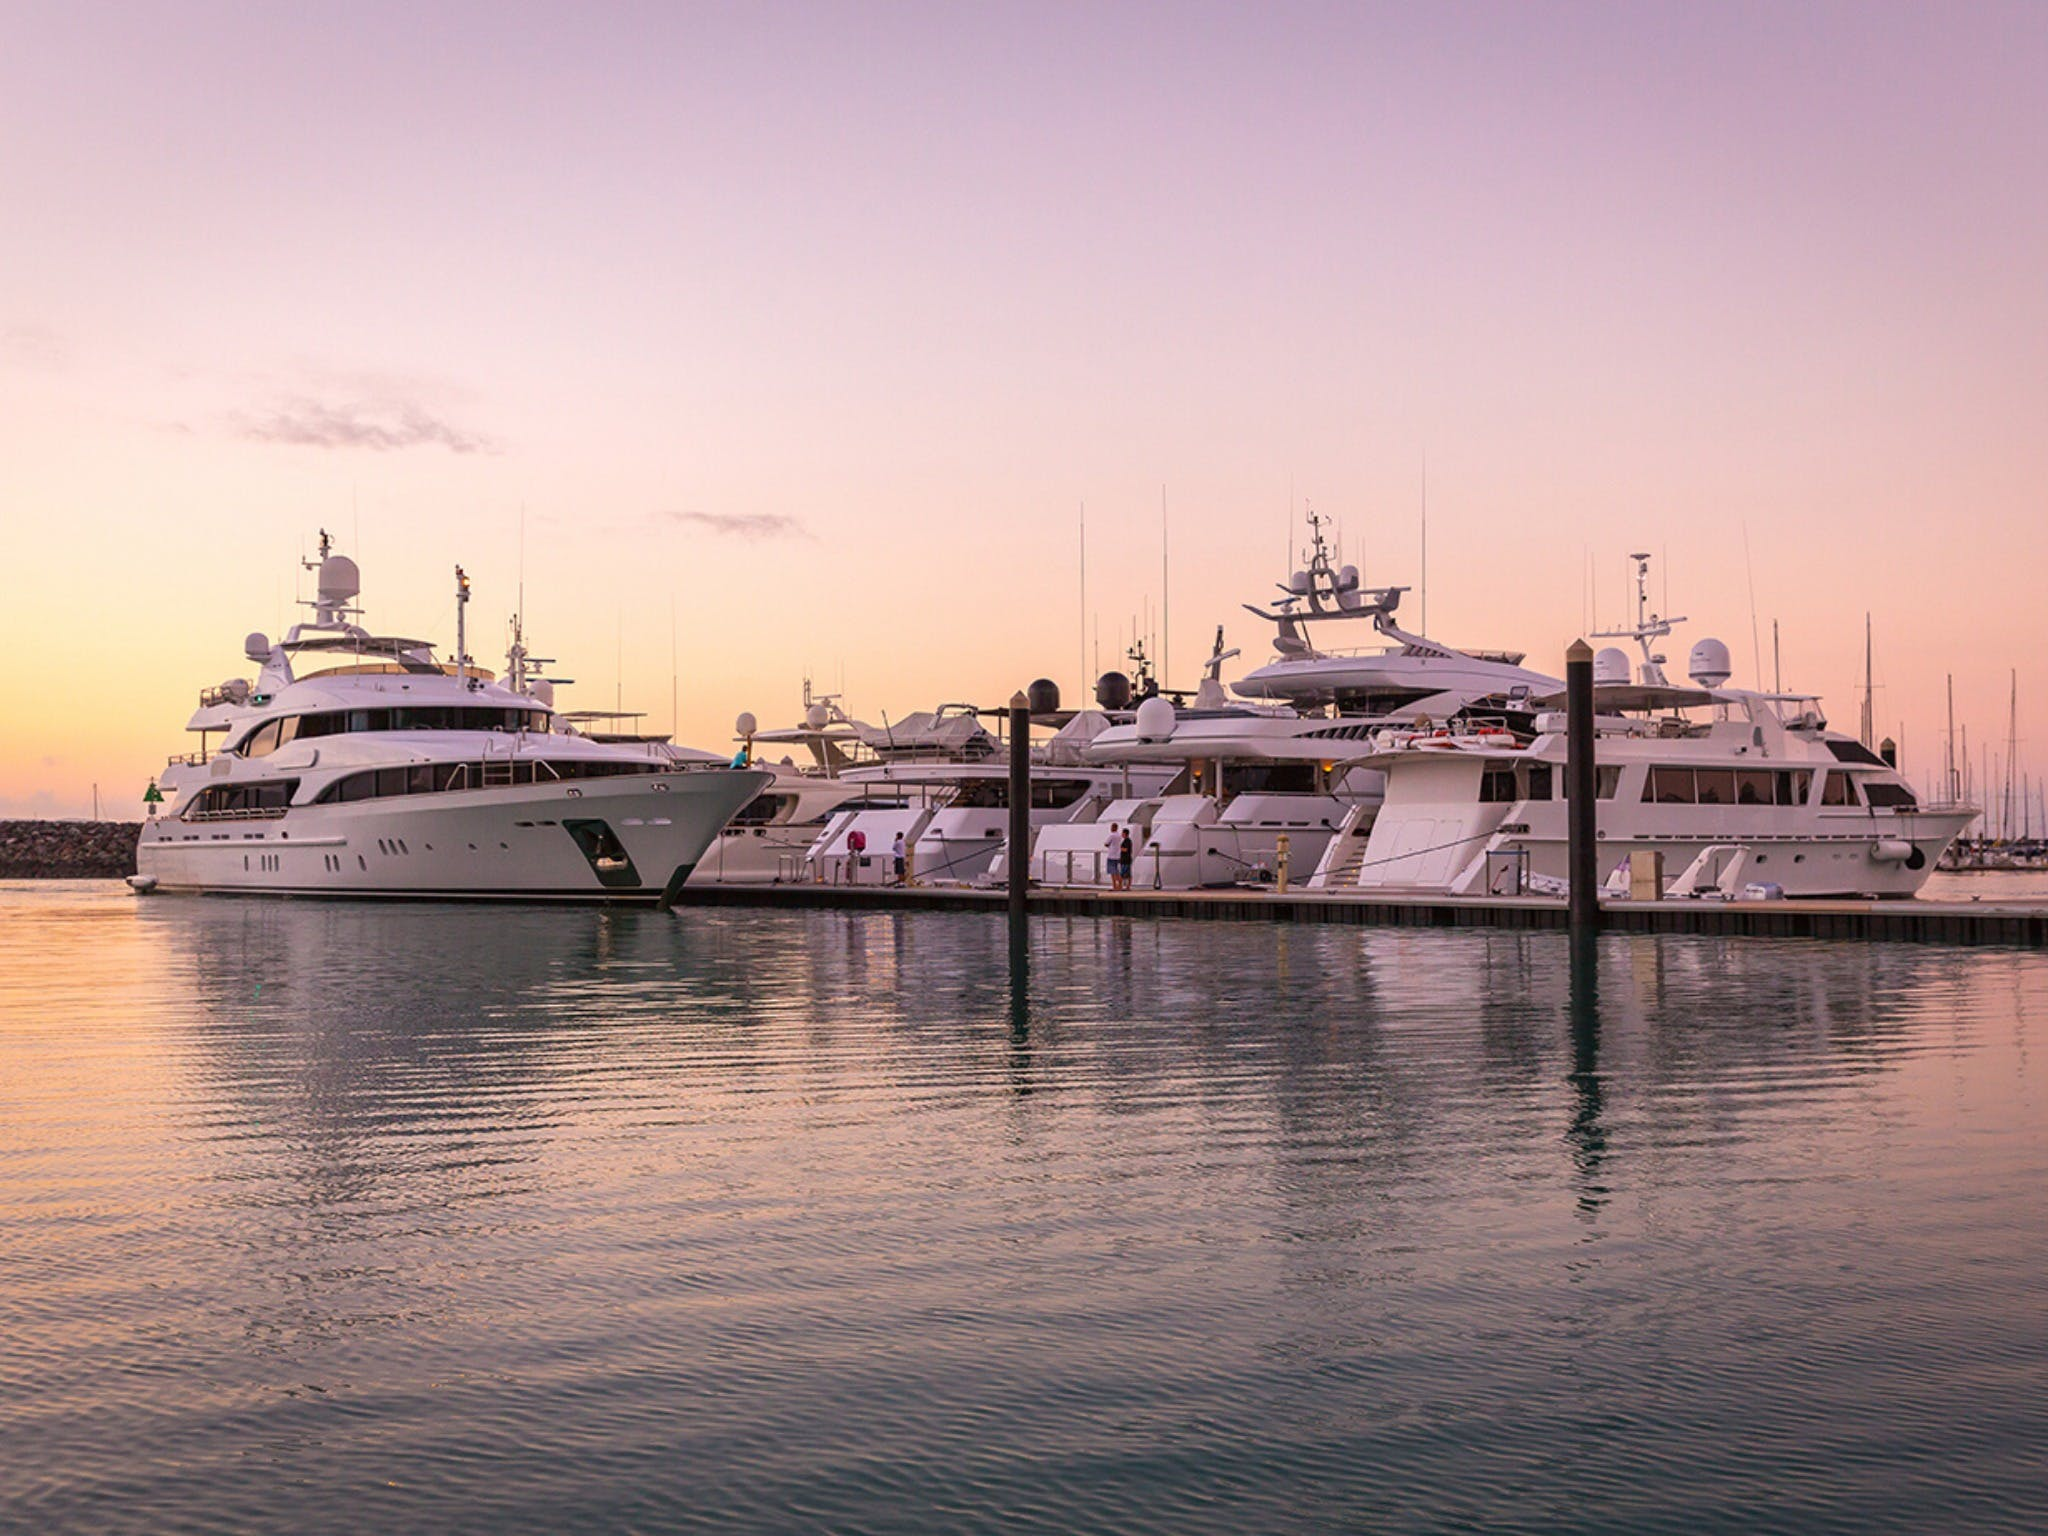 Australian Superyacht Rendezvous - Great Barrier Reef edition - Hotel Accommodation